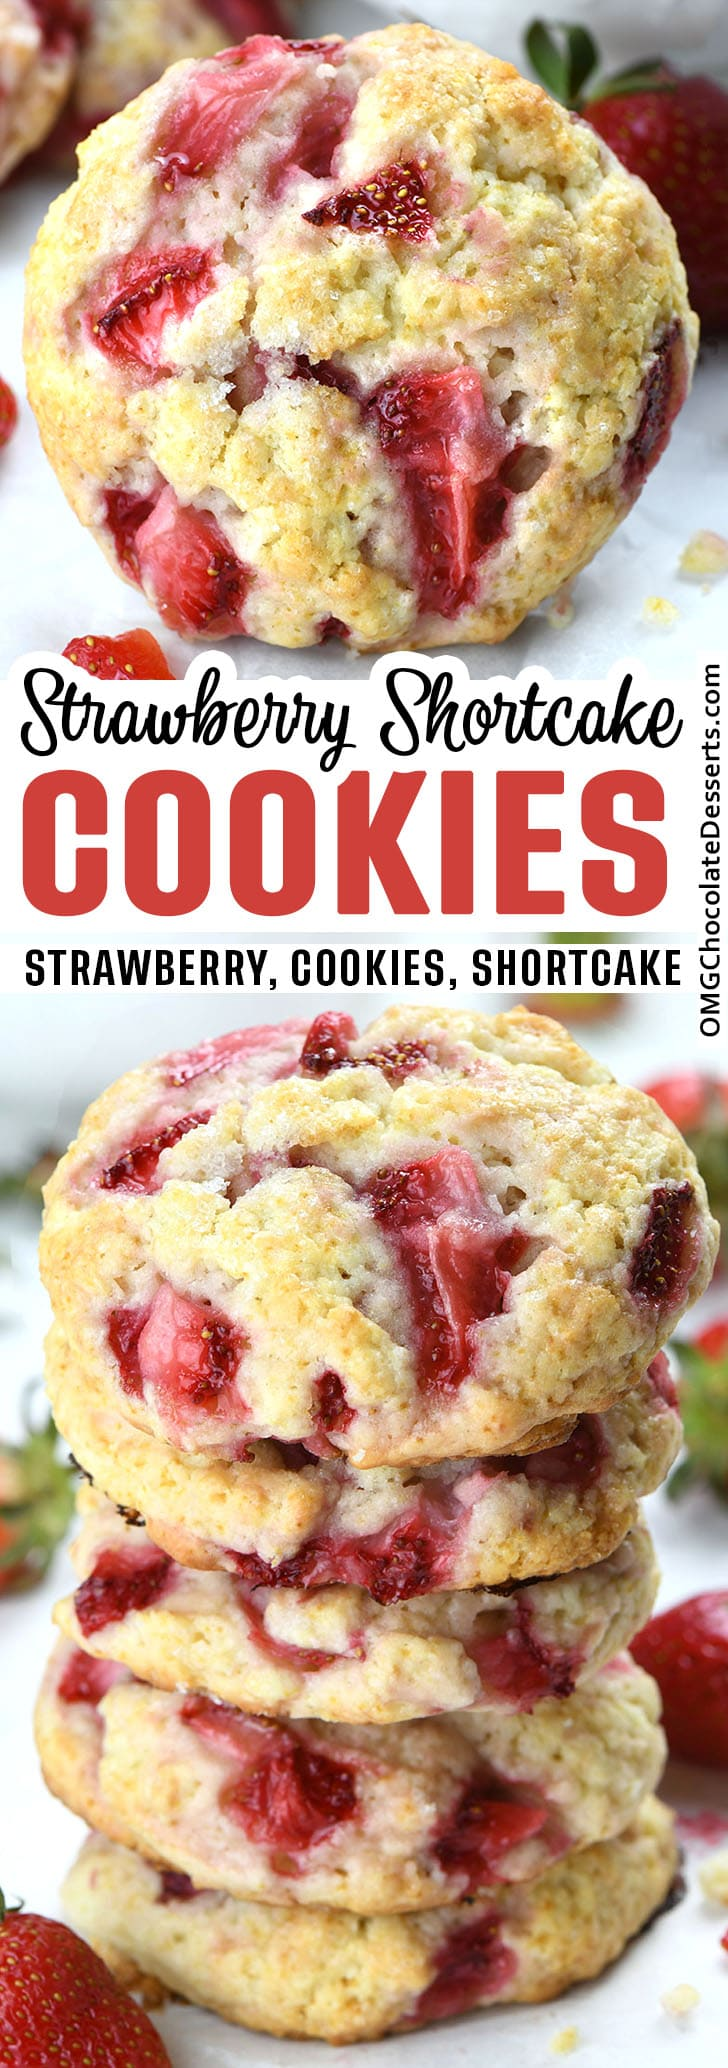 Two different images of Strawberry Shortcake Cookies